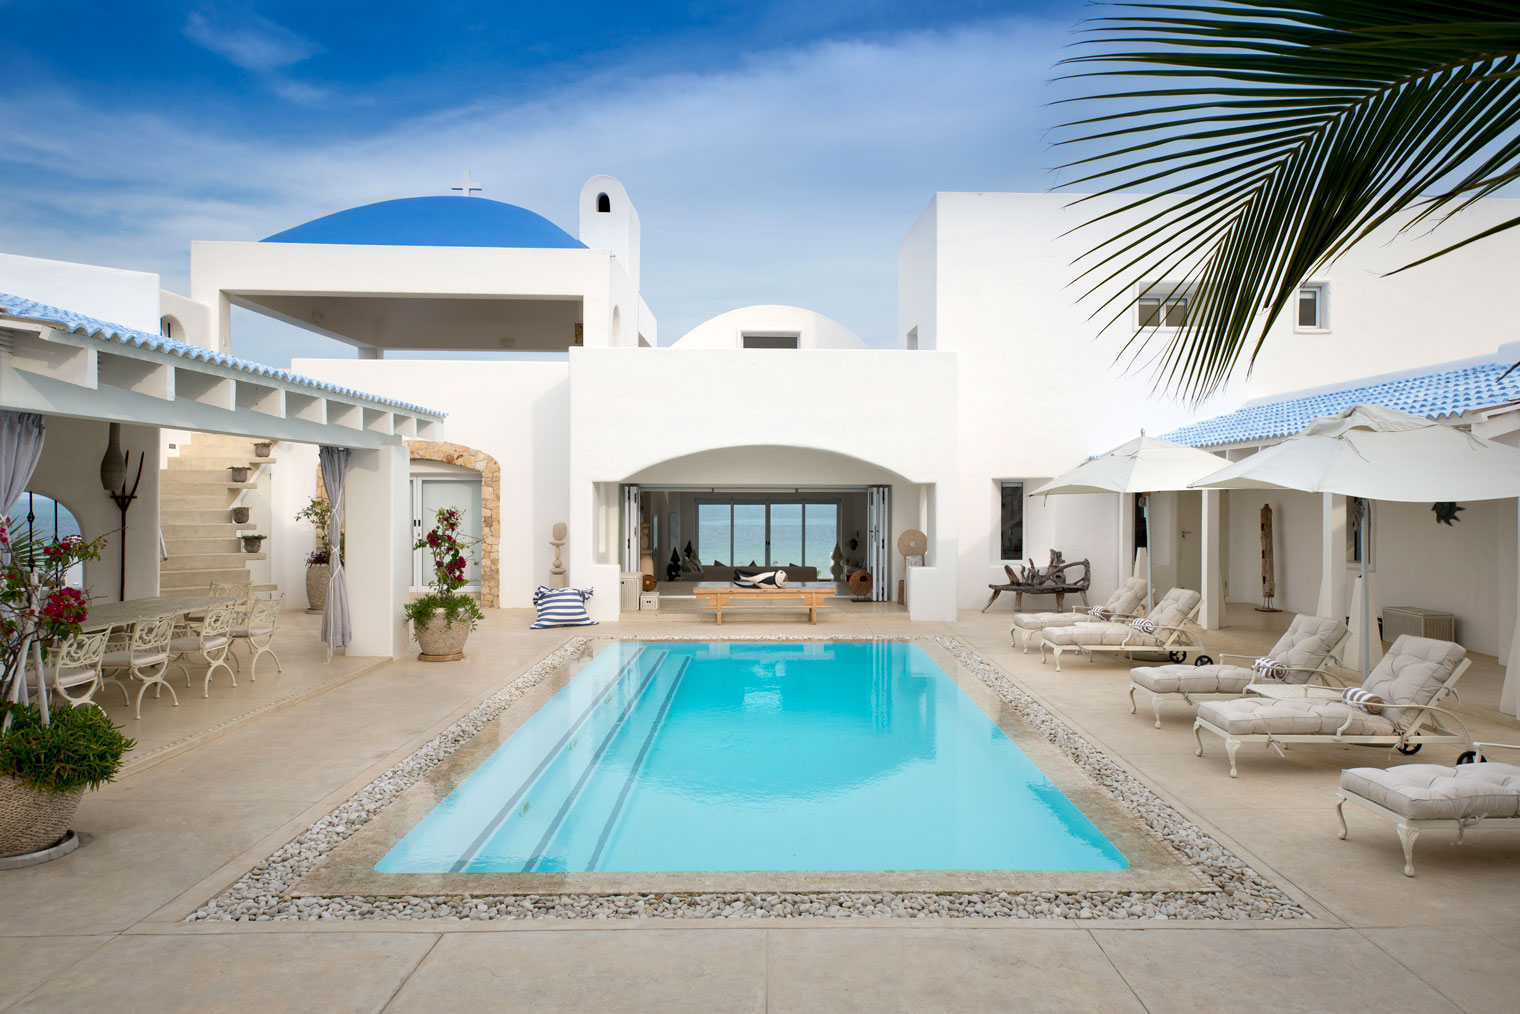 Santorini-Mozambique-Main-Pool-Area